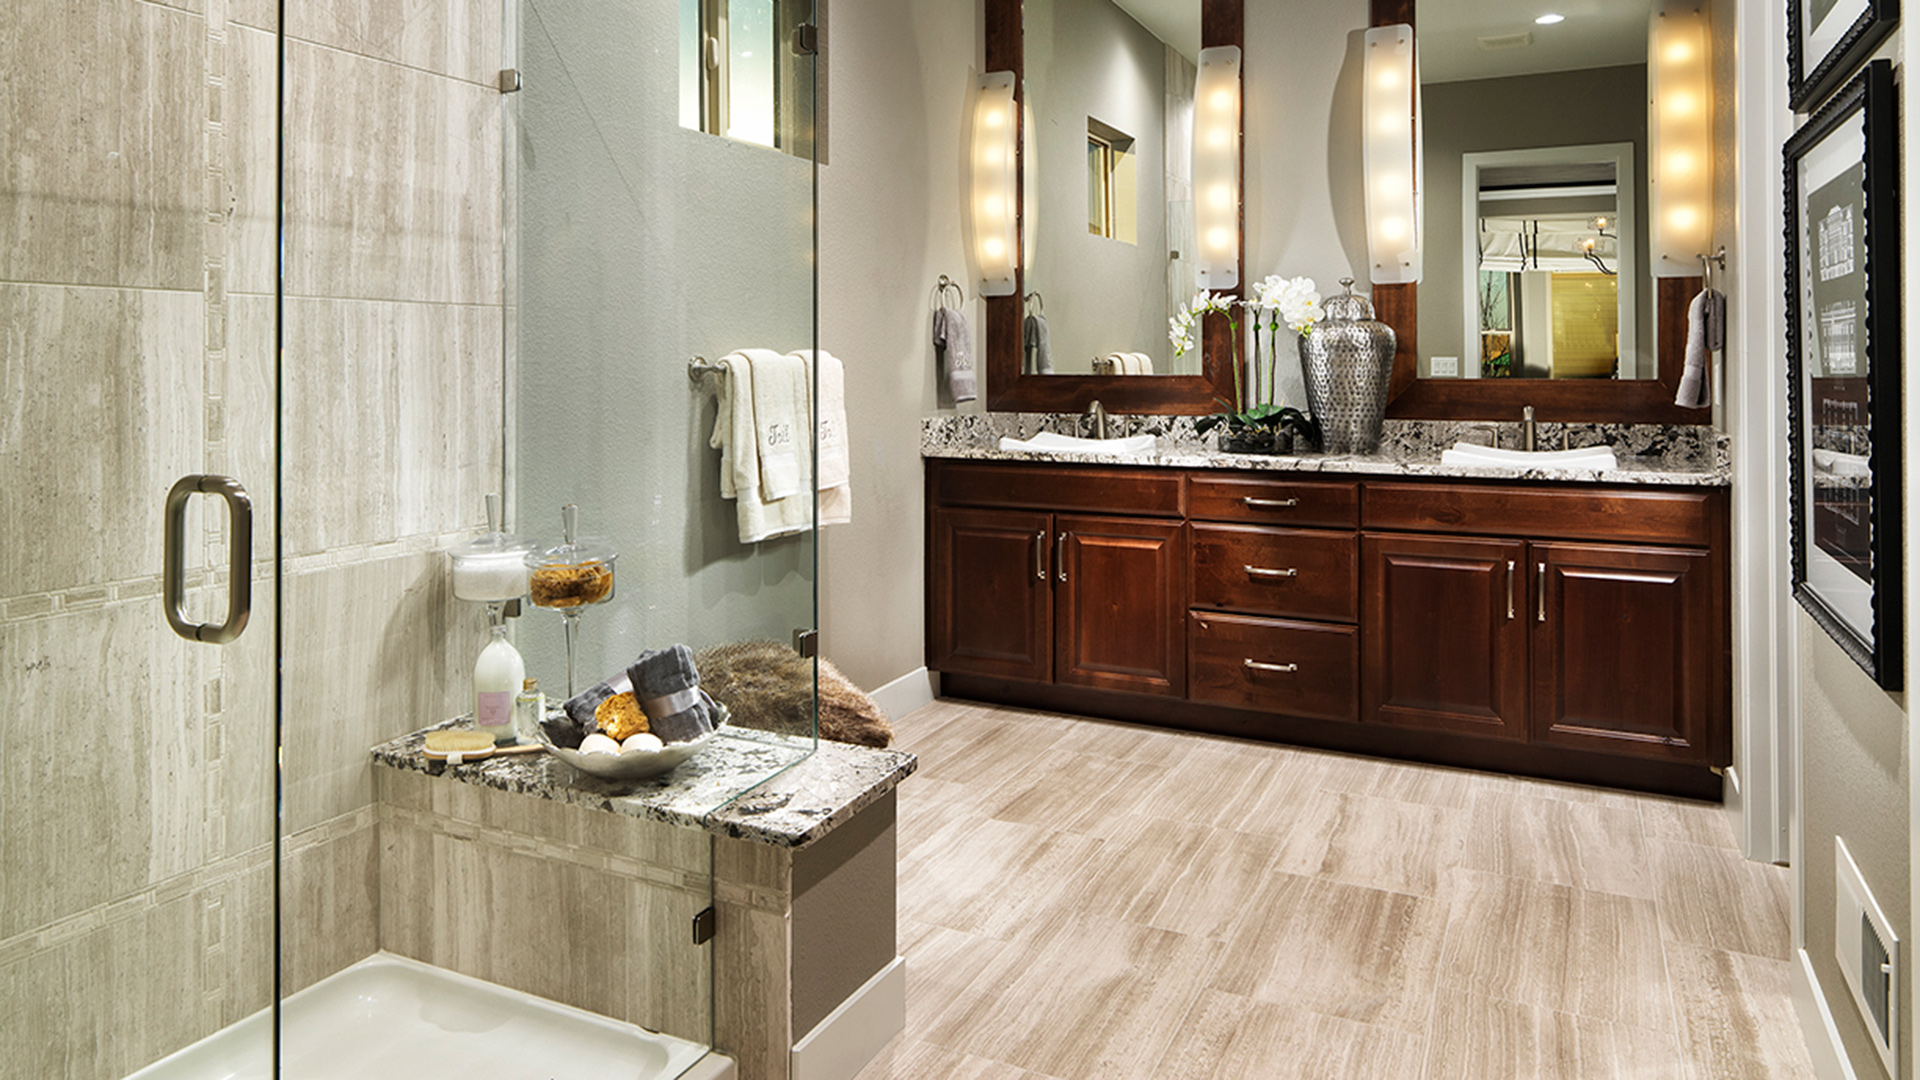 toll brothers at flatiron meadows the retreat the durango home rh tollbrothers com 1920s bathroom remodel bathroom 1920s